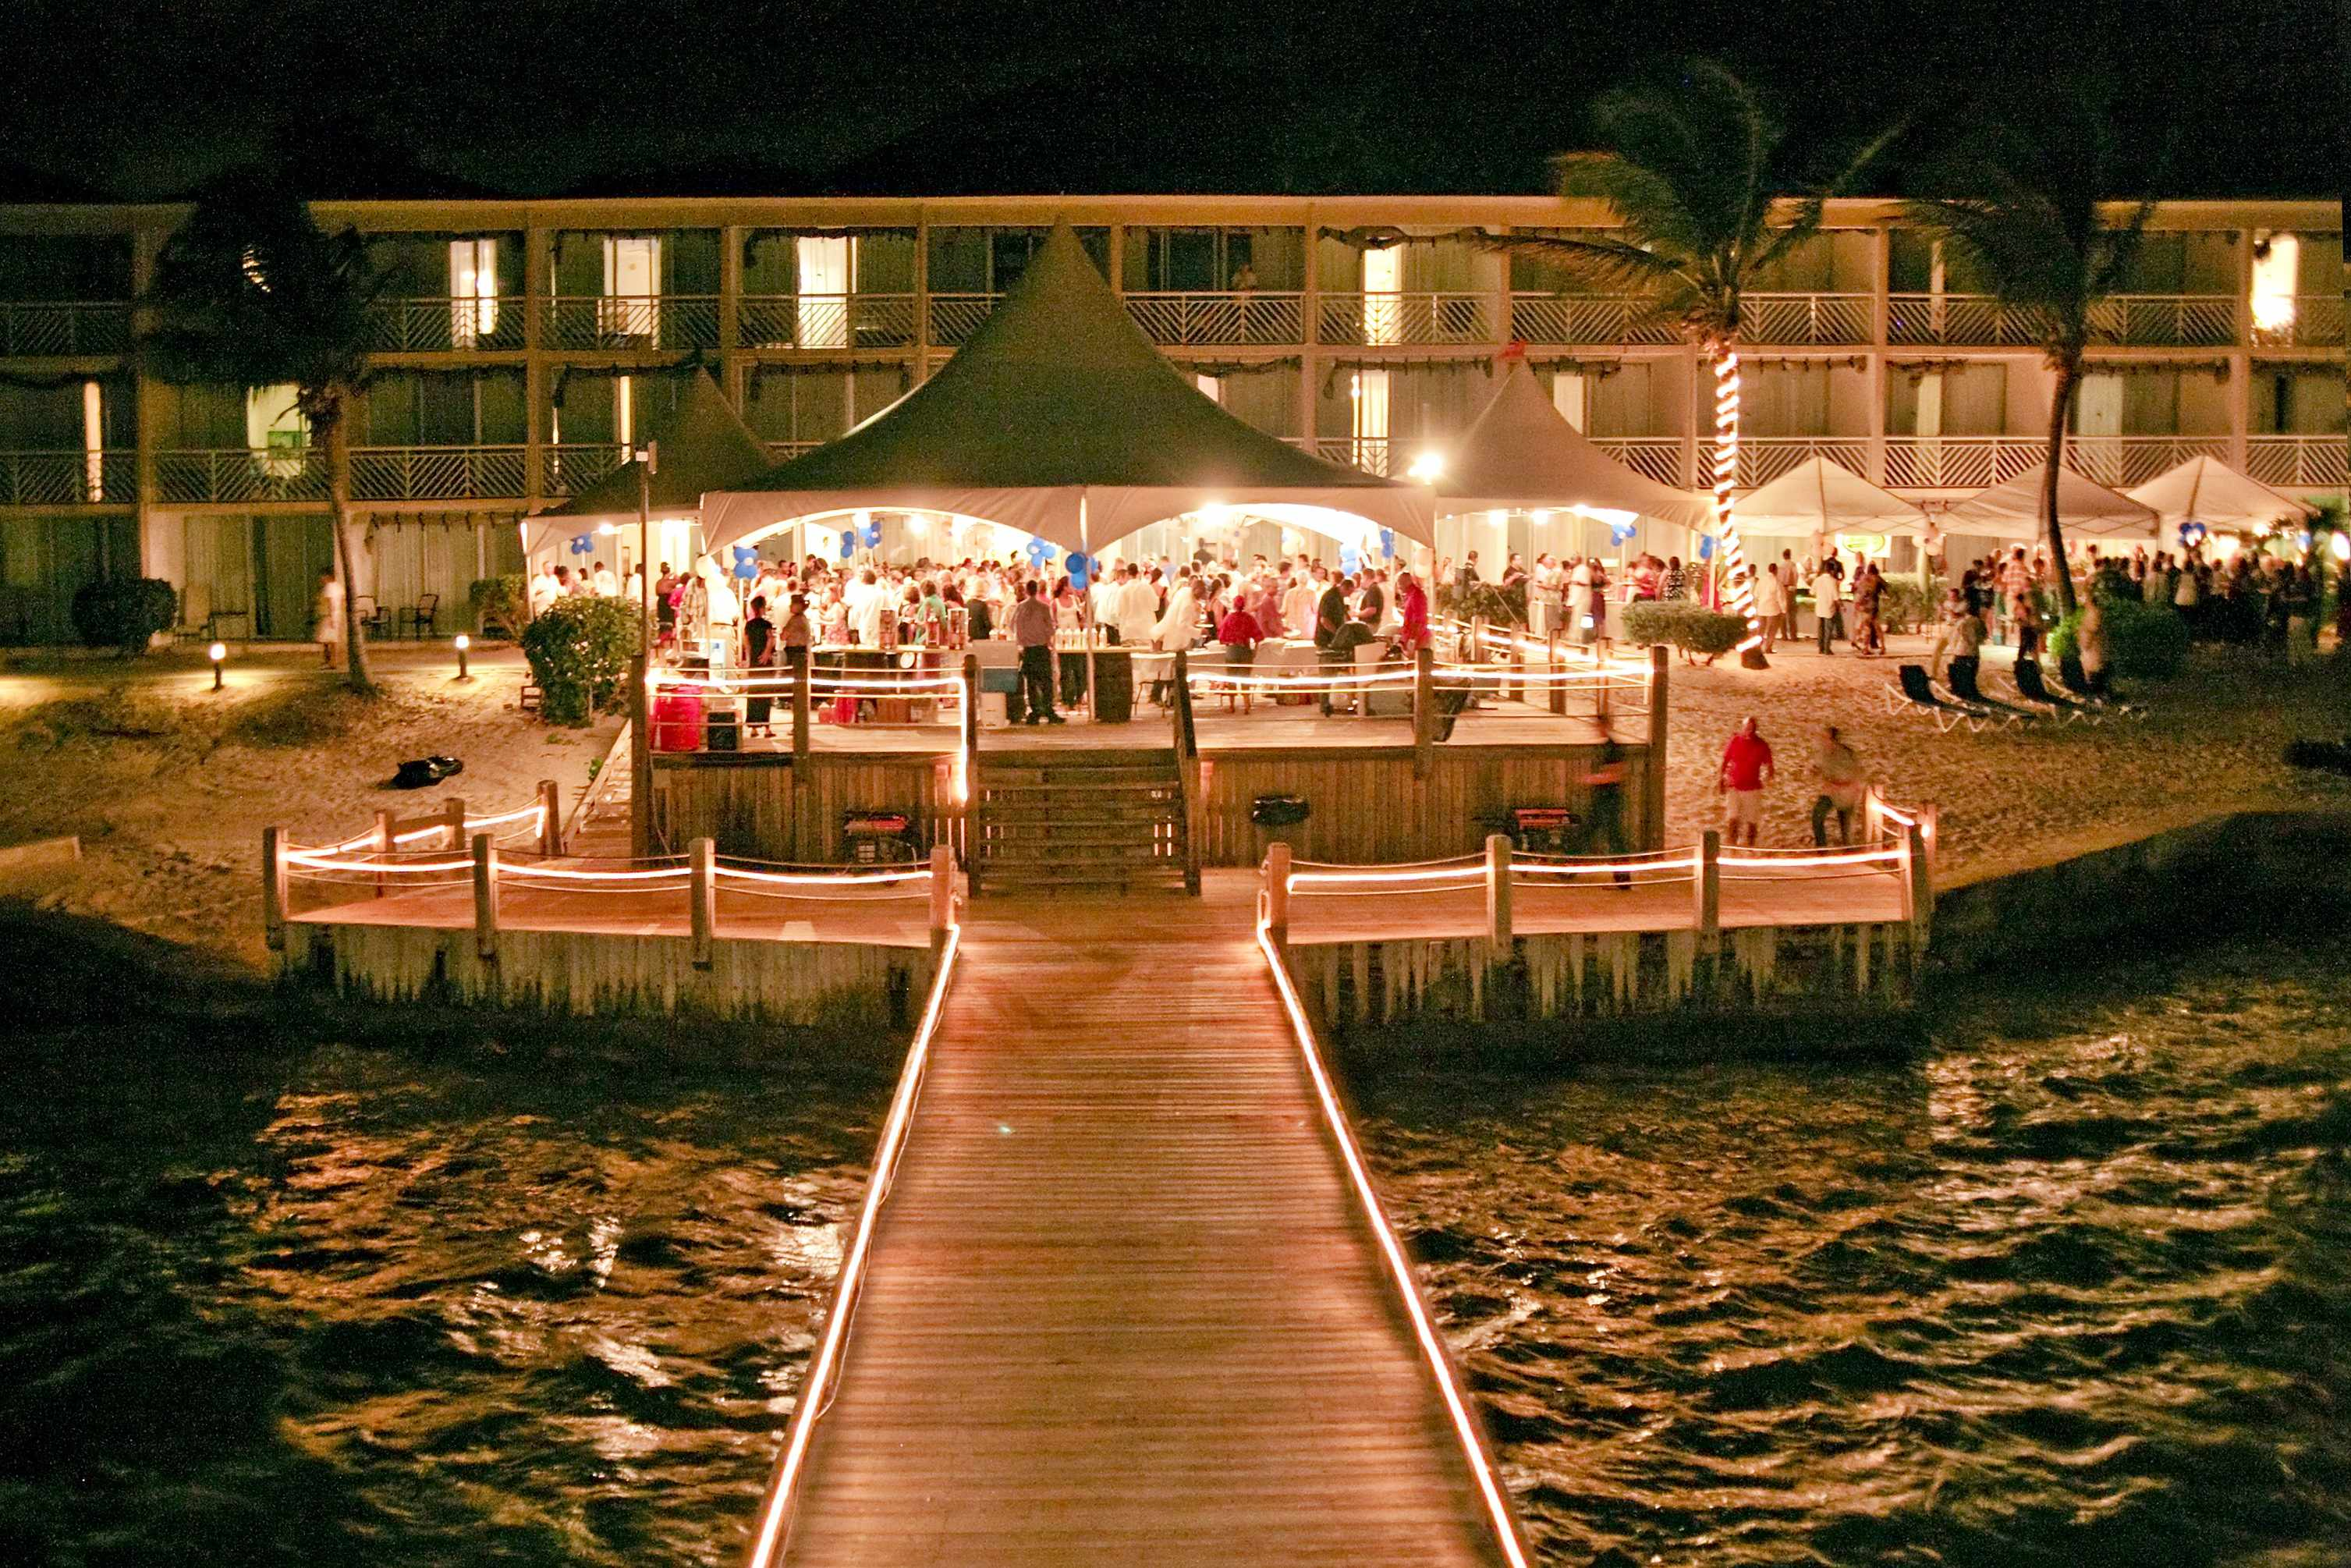 Caribbean Hotels Offer Irresistible Packages For 2015 St Croix Food Amp Wine Experience